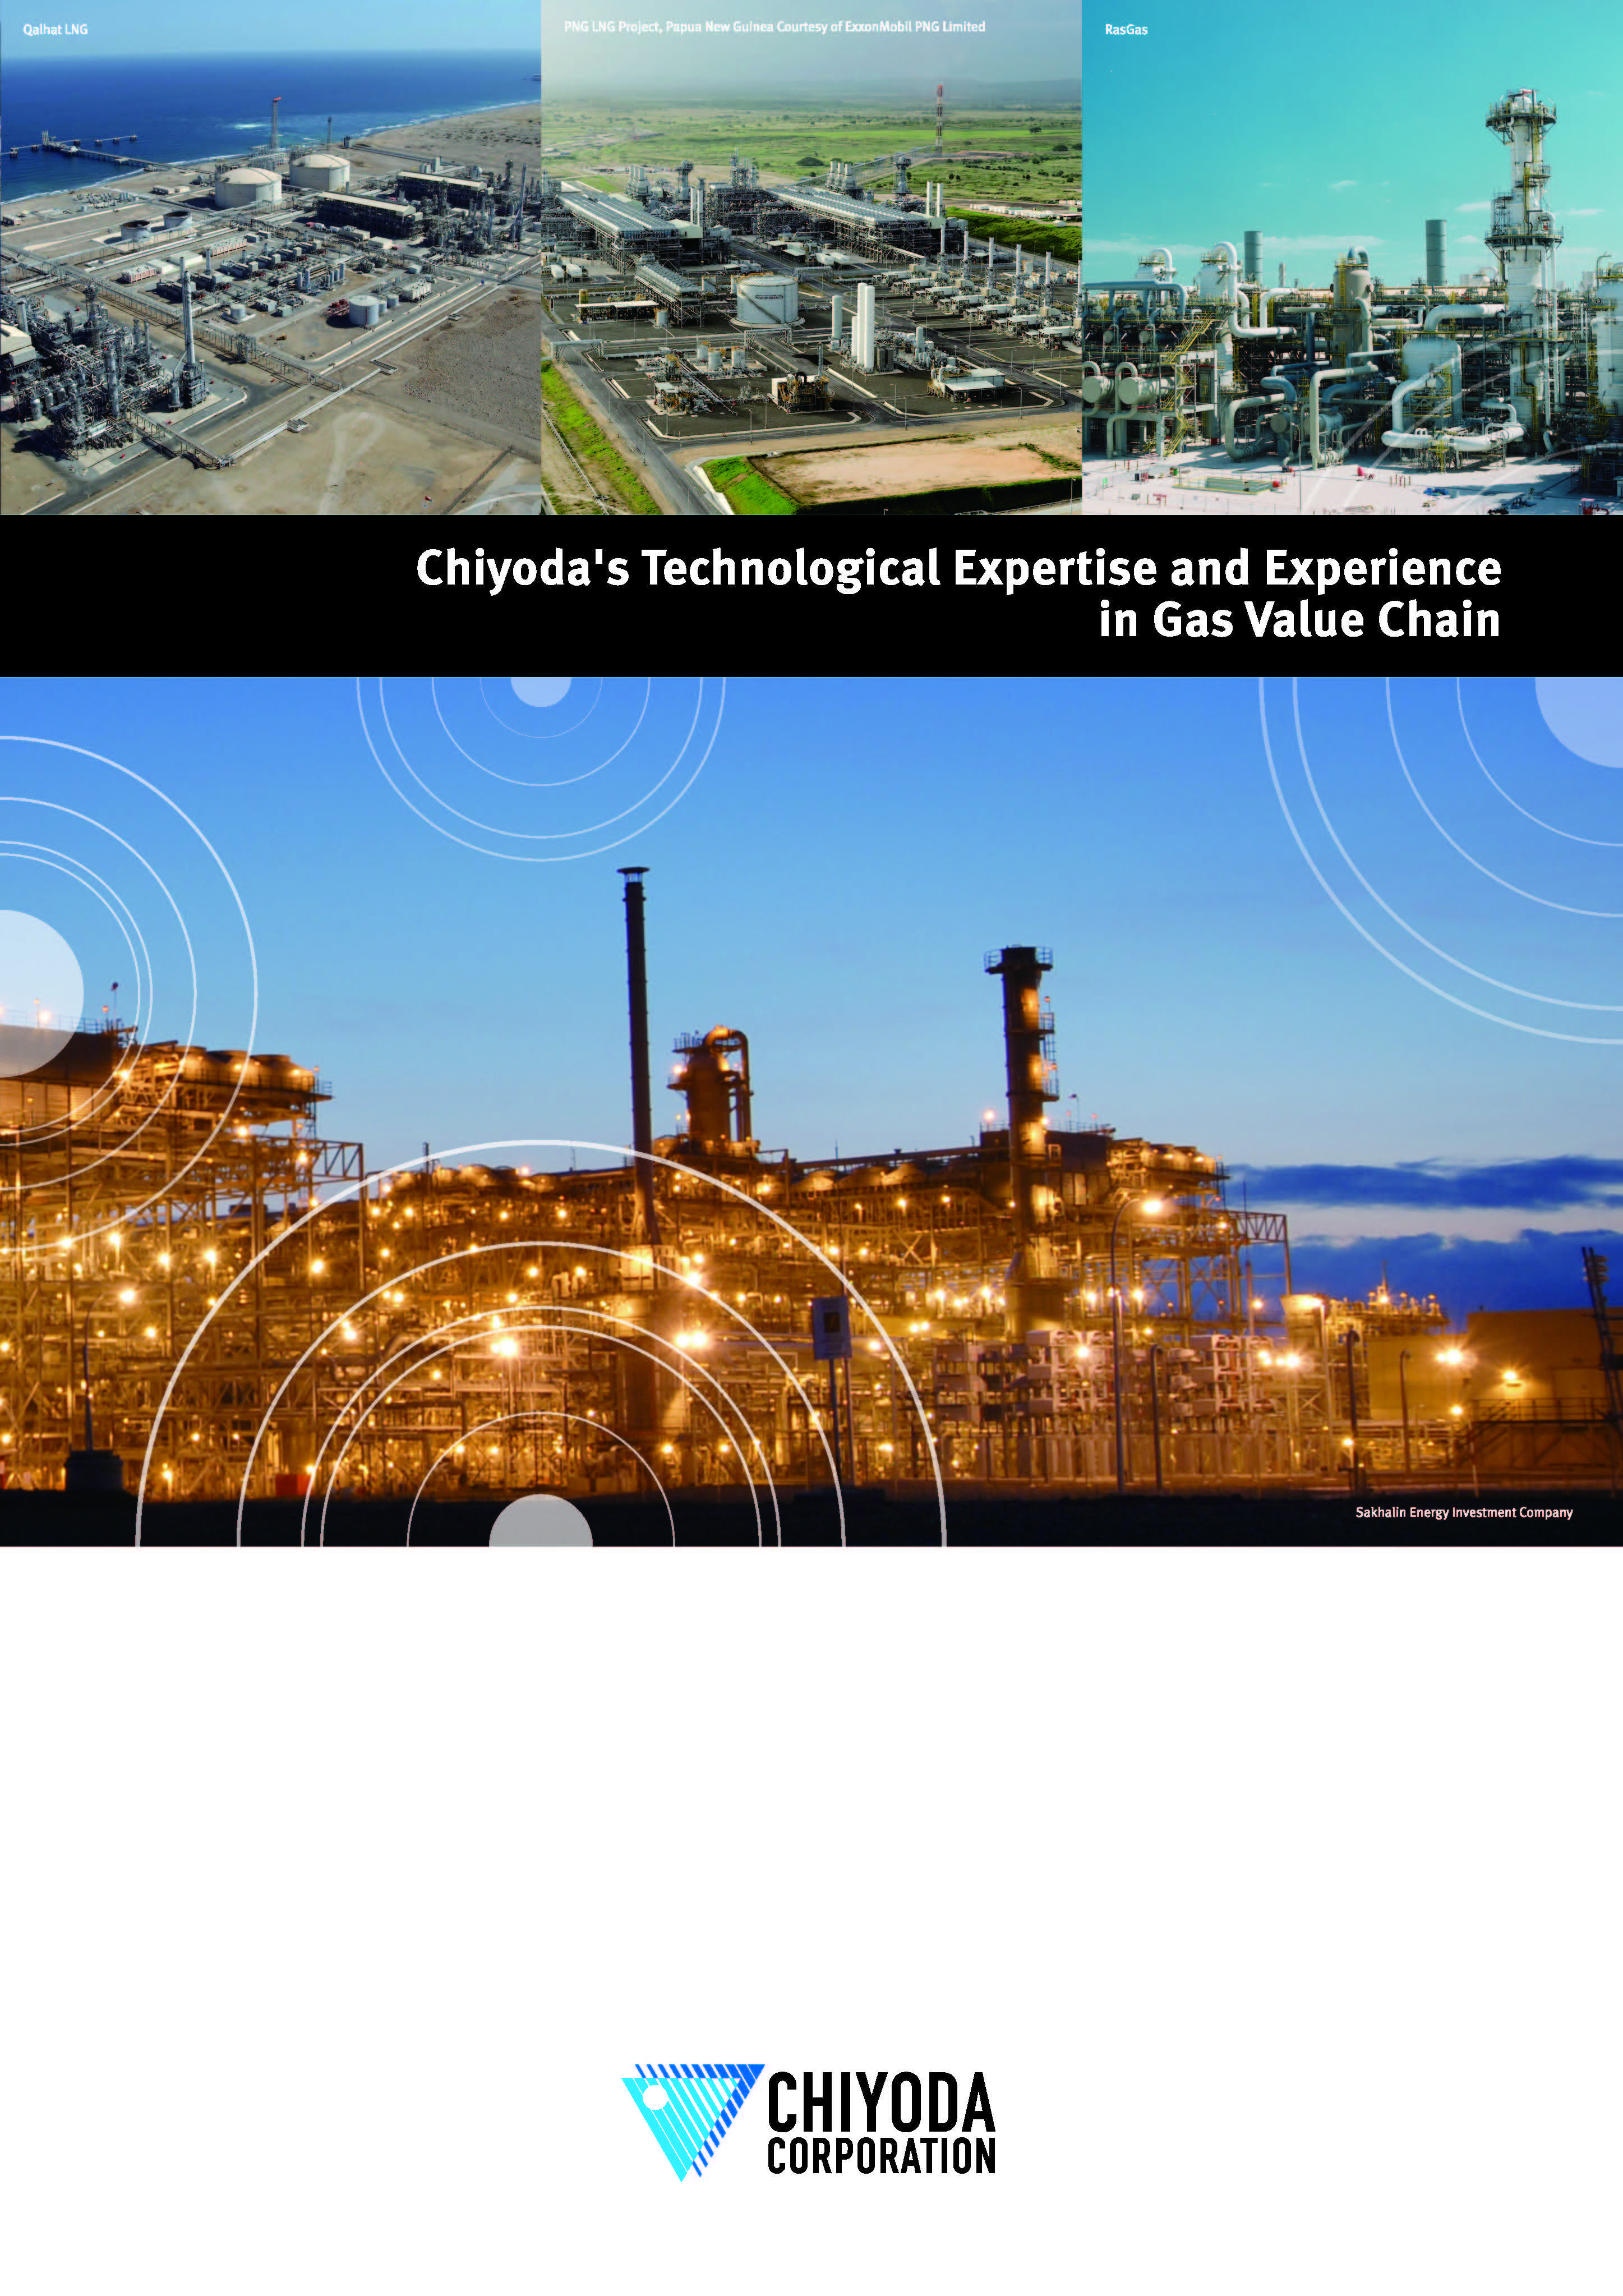 Chiyoda's Technological Expertise and Experience in Gas Value Chain (英語のみ)